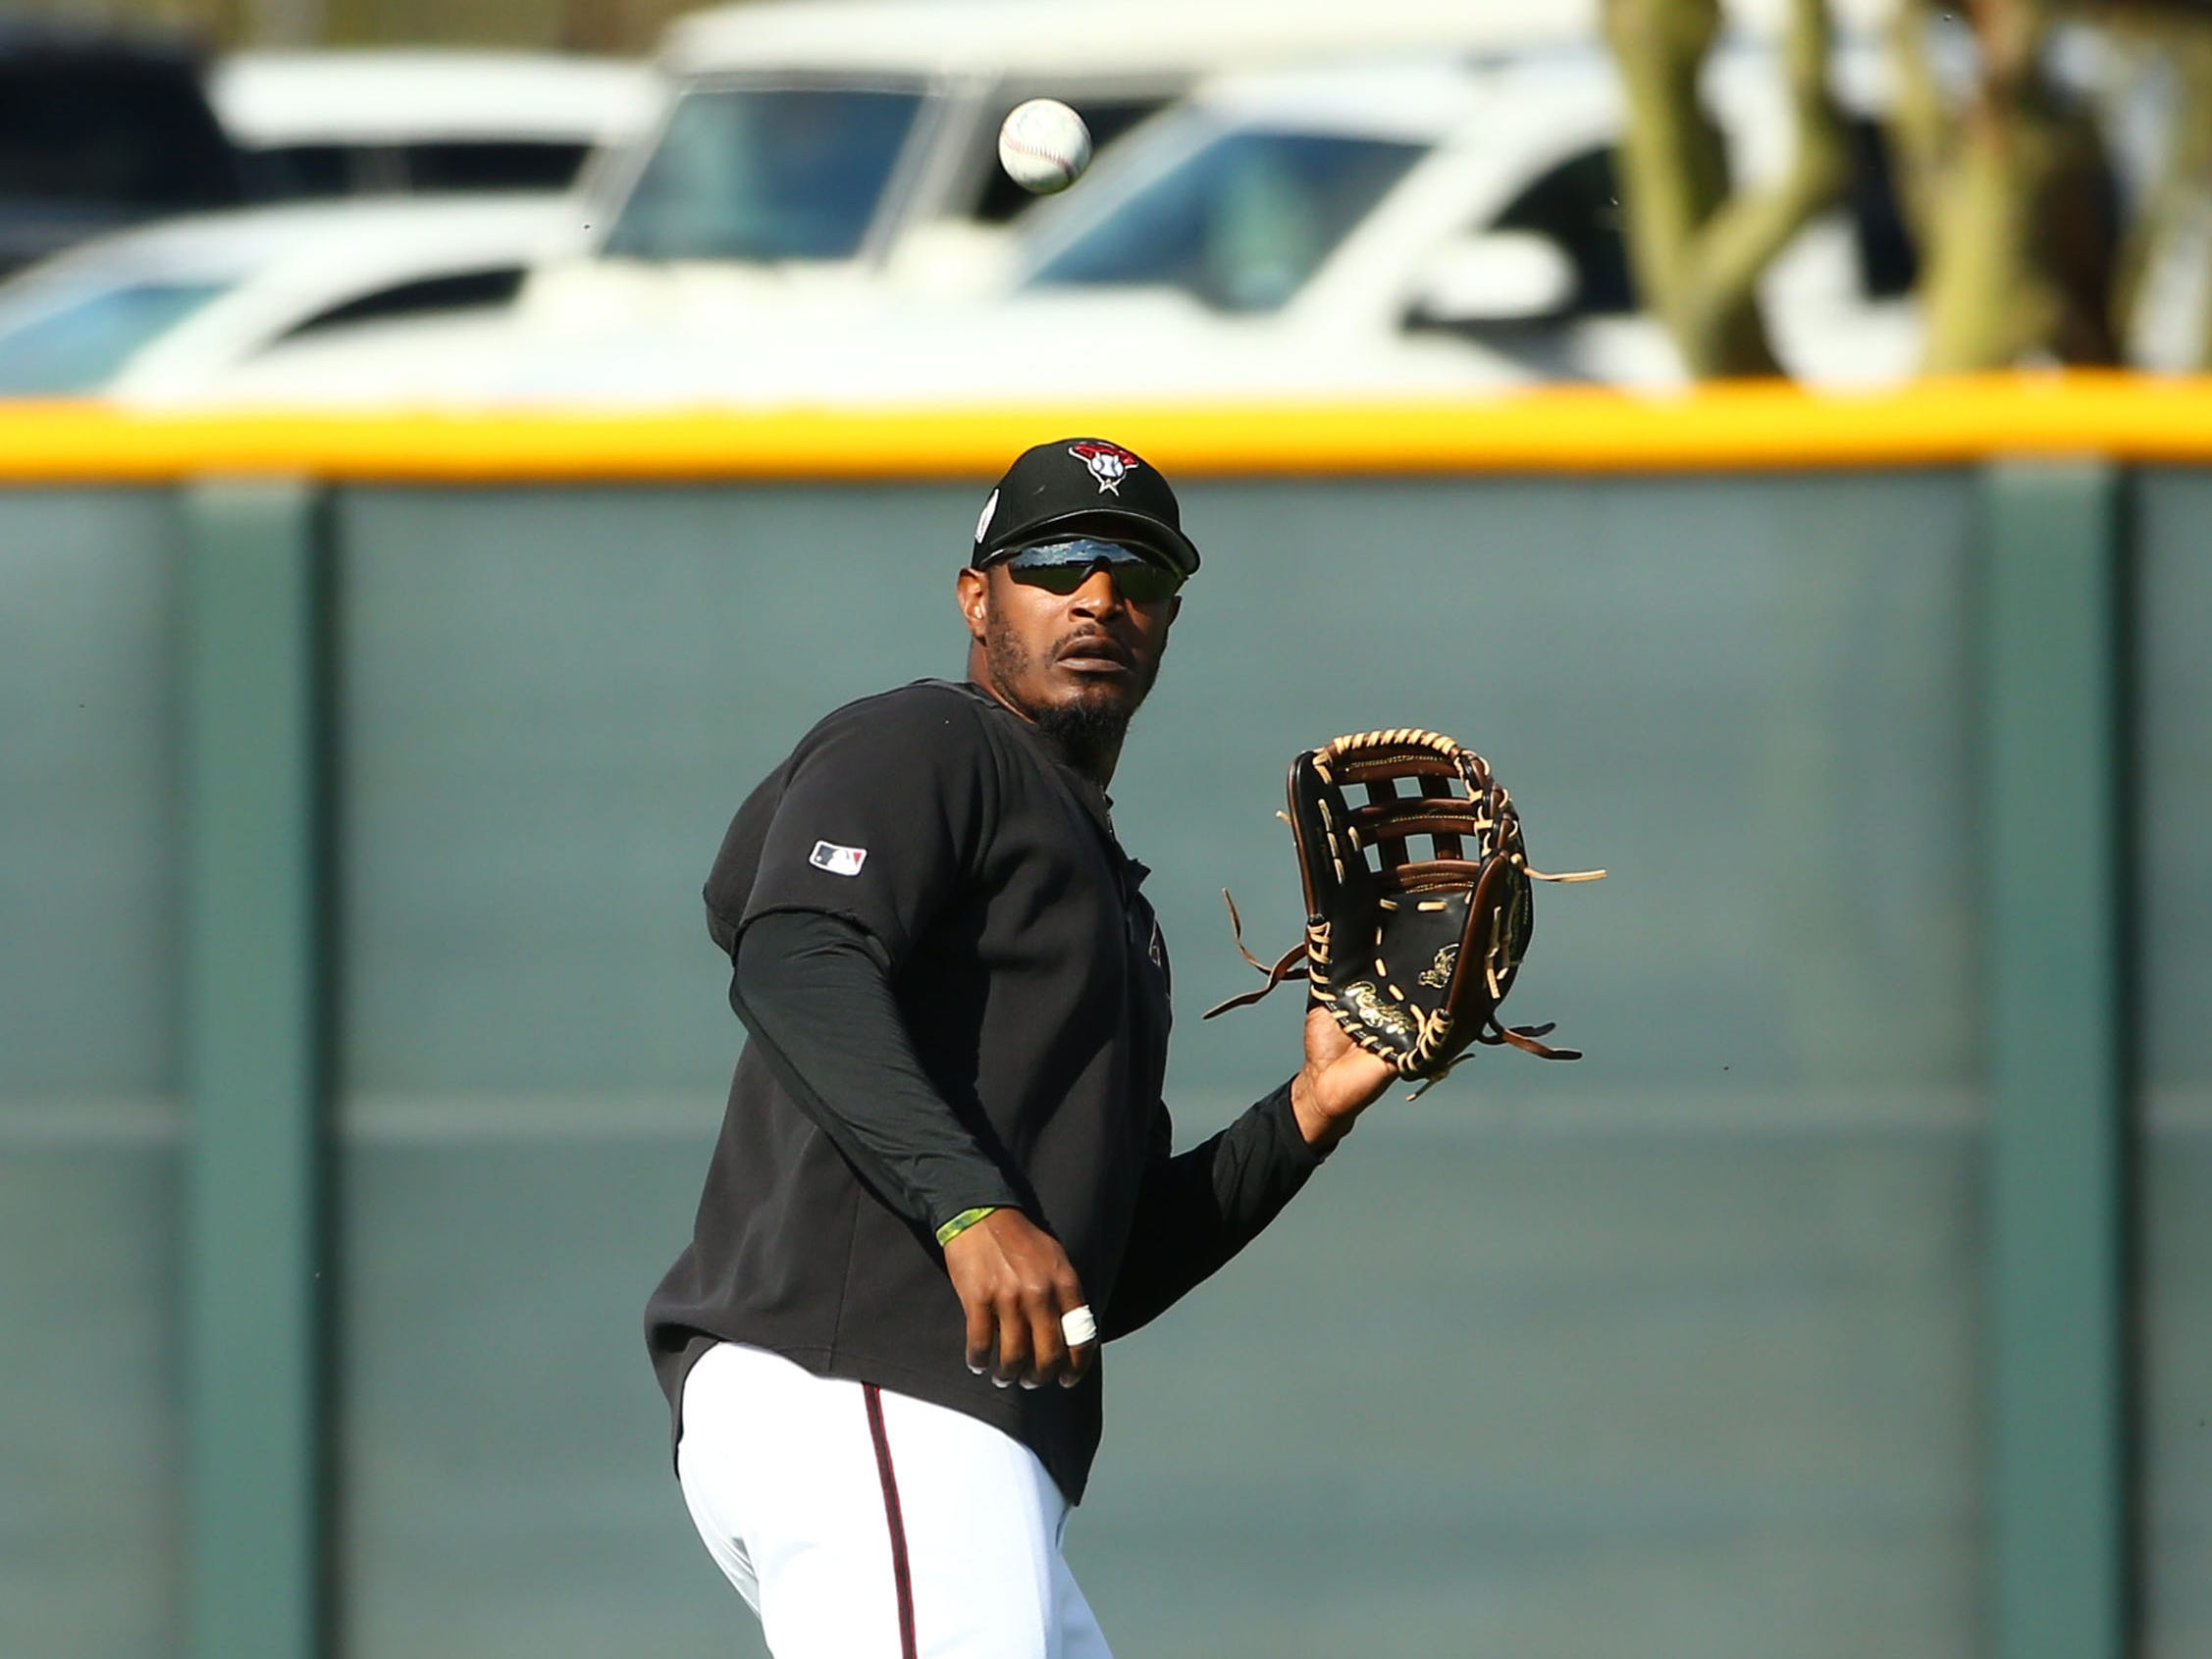 Arizona Diamondbacks outfielder Adam Jones during spring training work-outs on Mar. 19, 2019 at Salt River Fields in Scottsdale, Ariz.